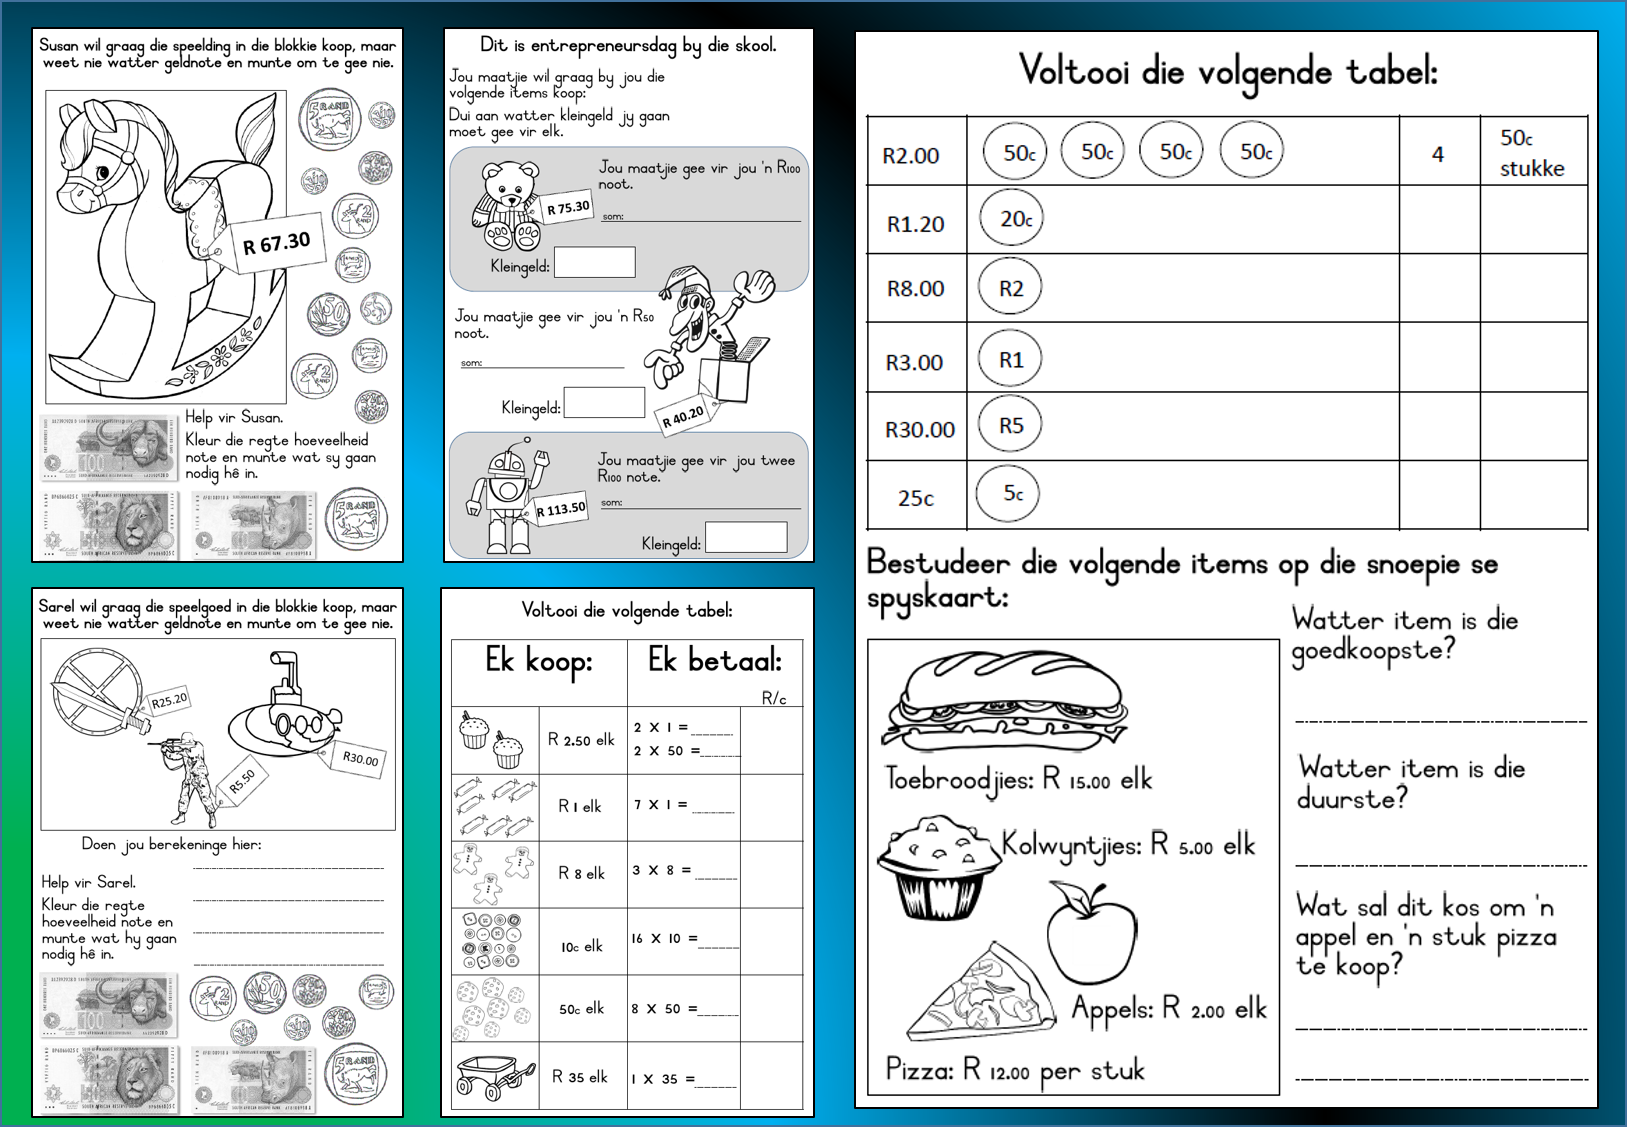 worksheet Grade 4 Afrikaans Worksheets Download pin by komma leer en leessentrum on afrikaans engels wiskunde money worksheets grade 3 mathematics maths homeschool math homeschooling